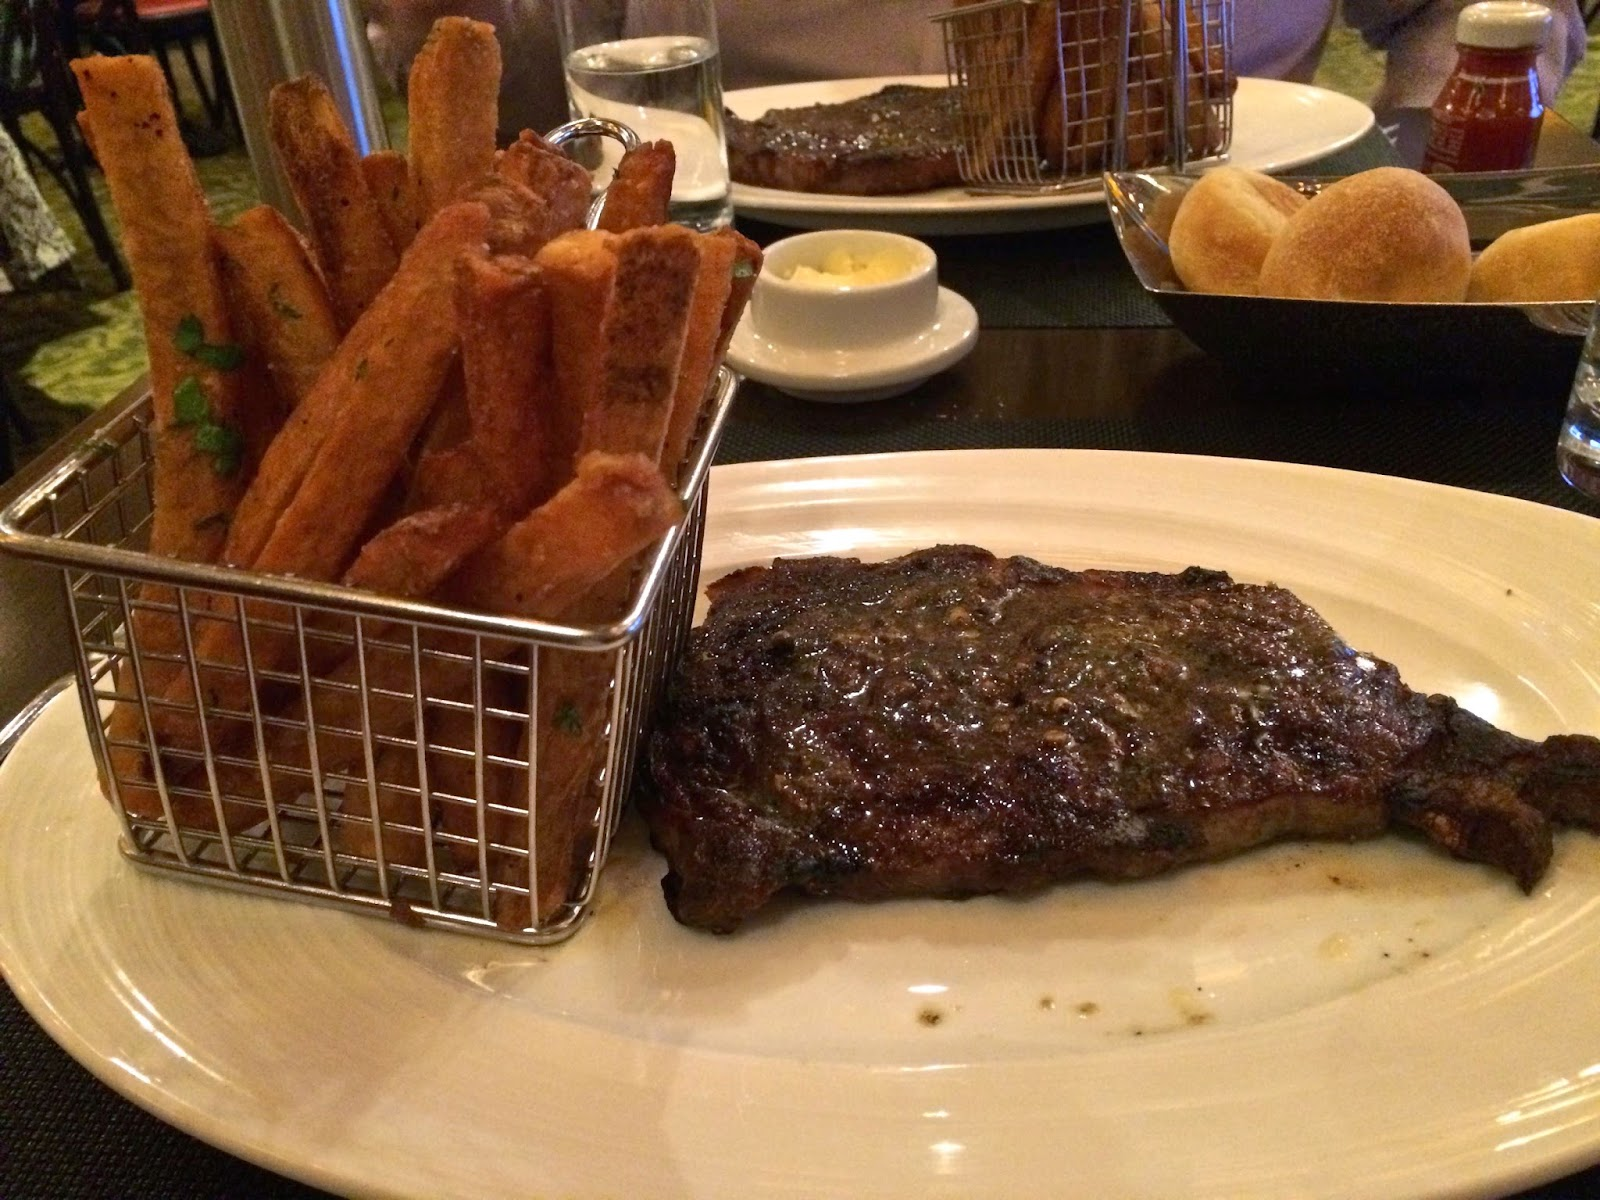 Delmonico Steak with Handcut Fries